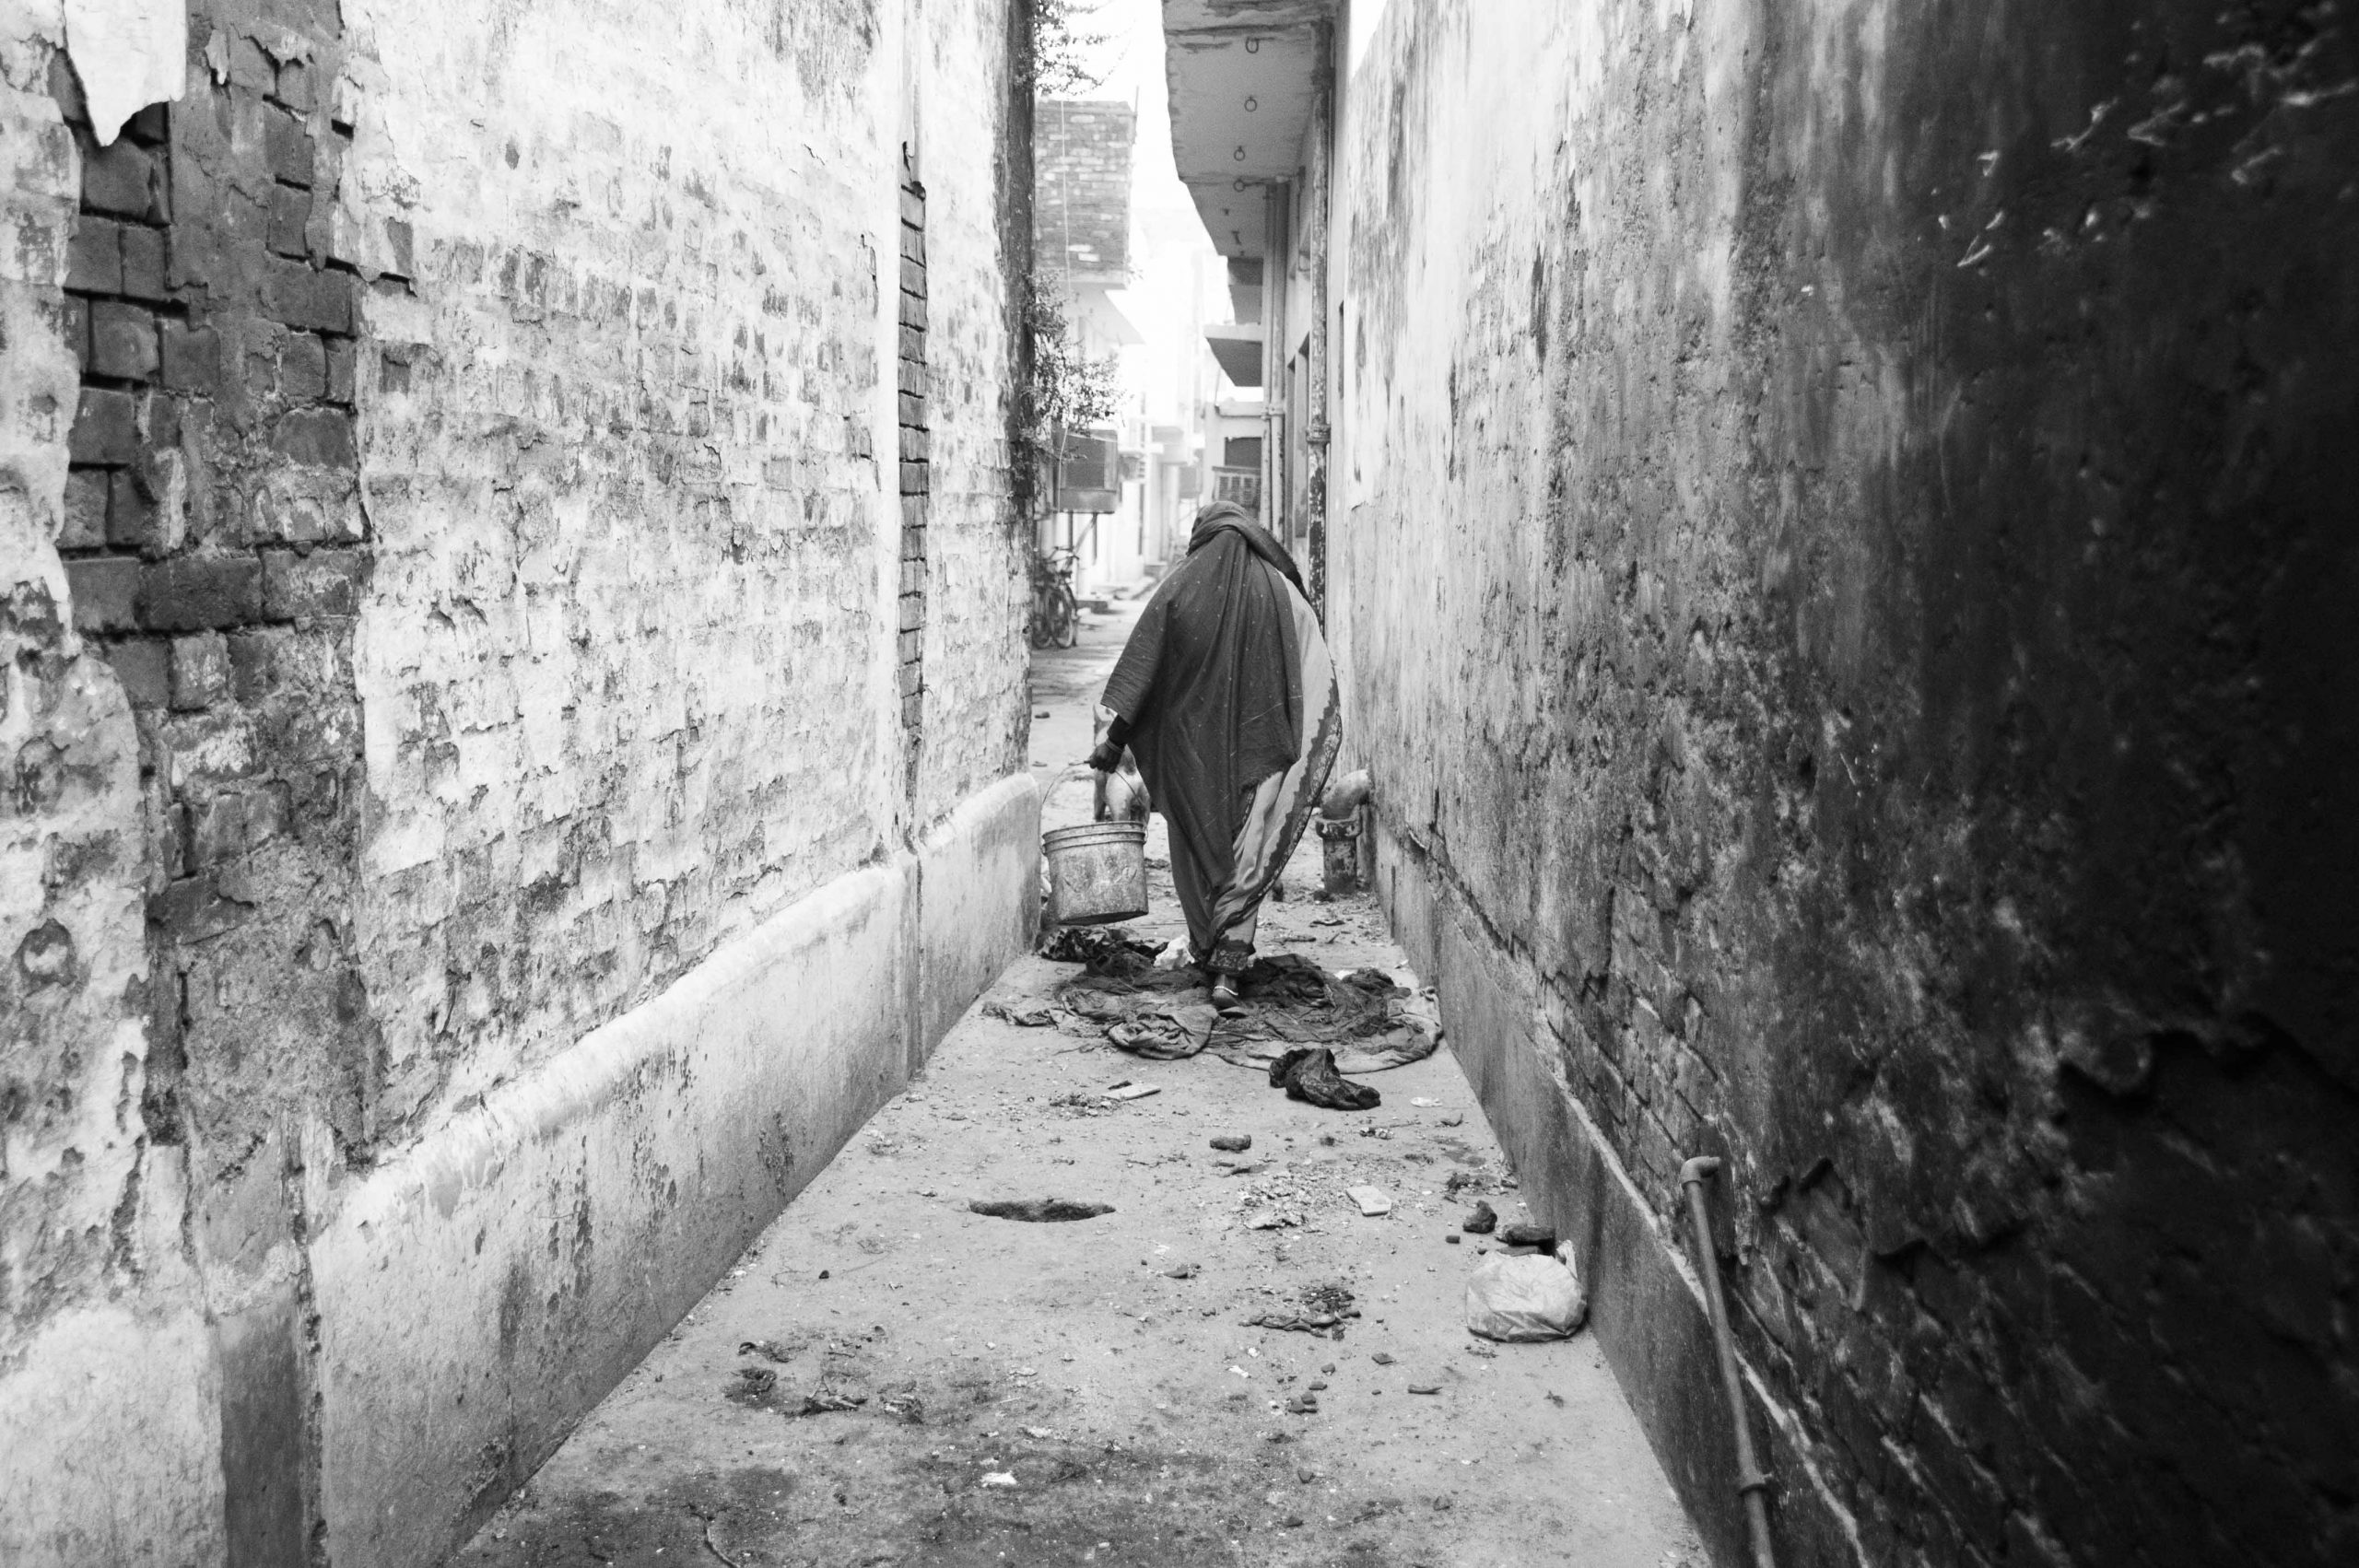 woman carrying buckets in alley